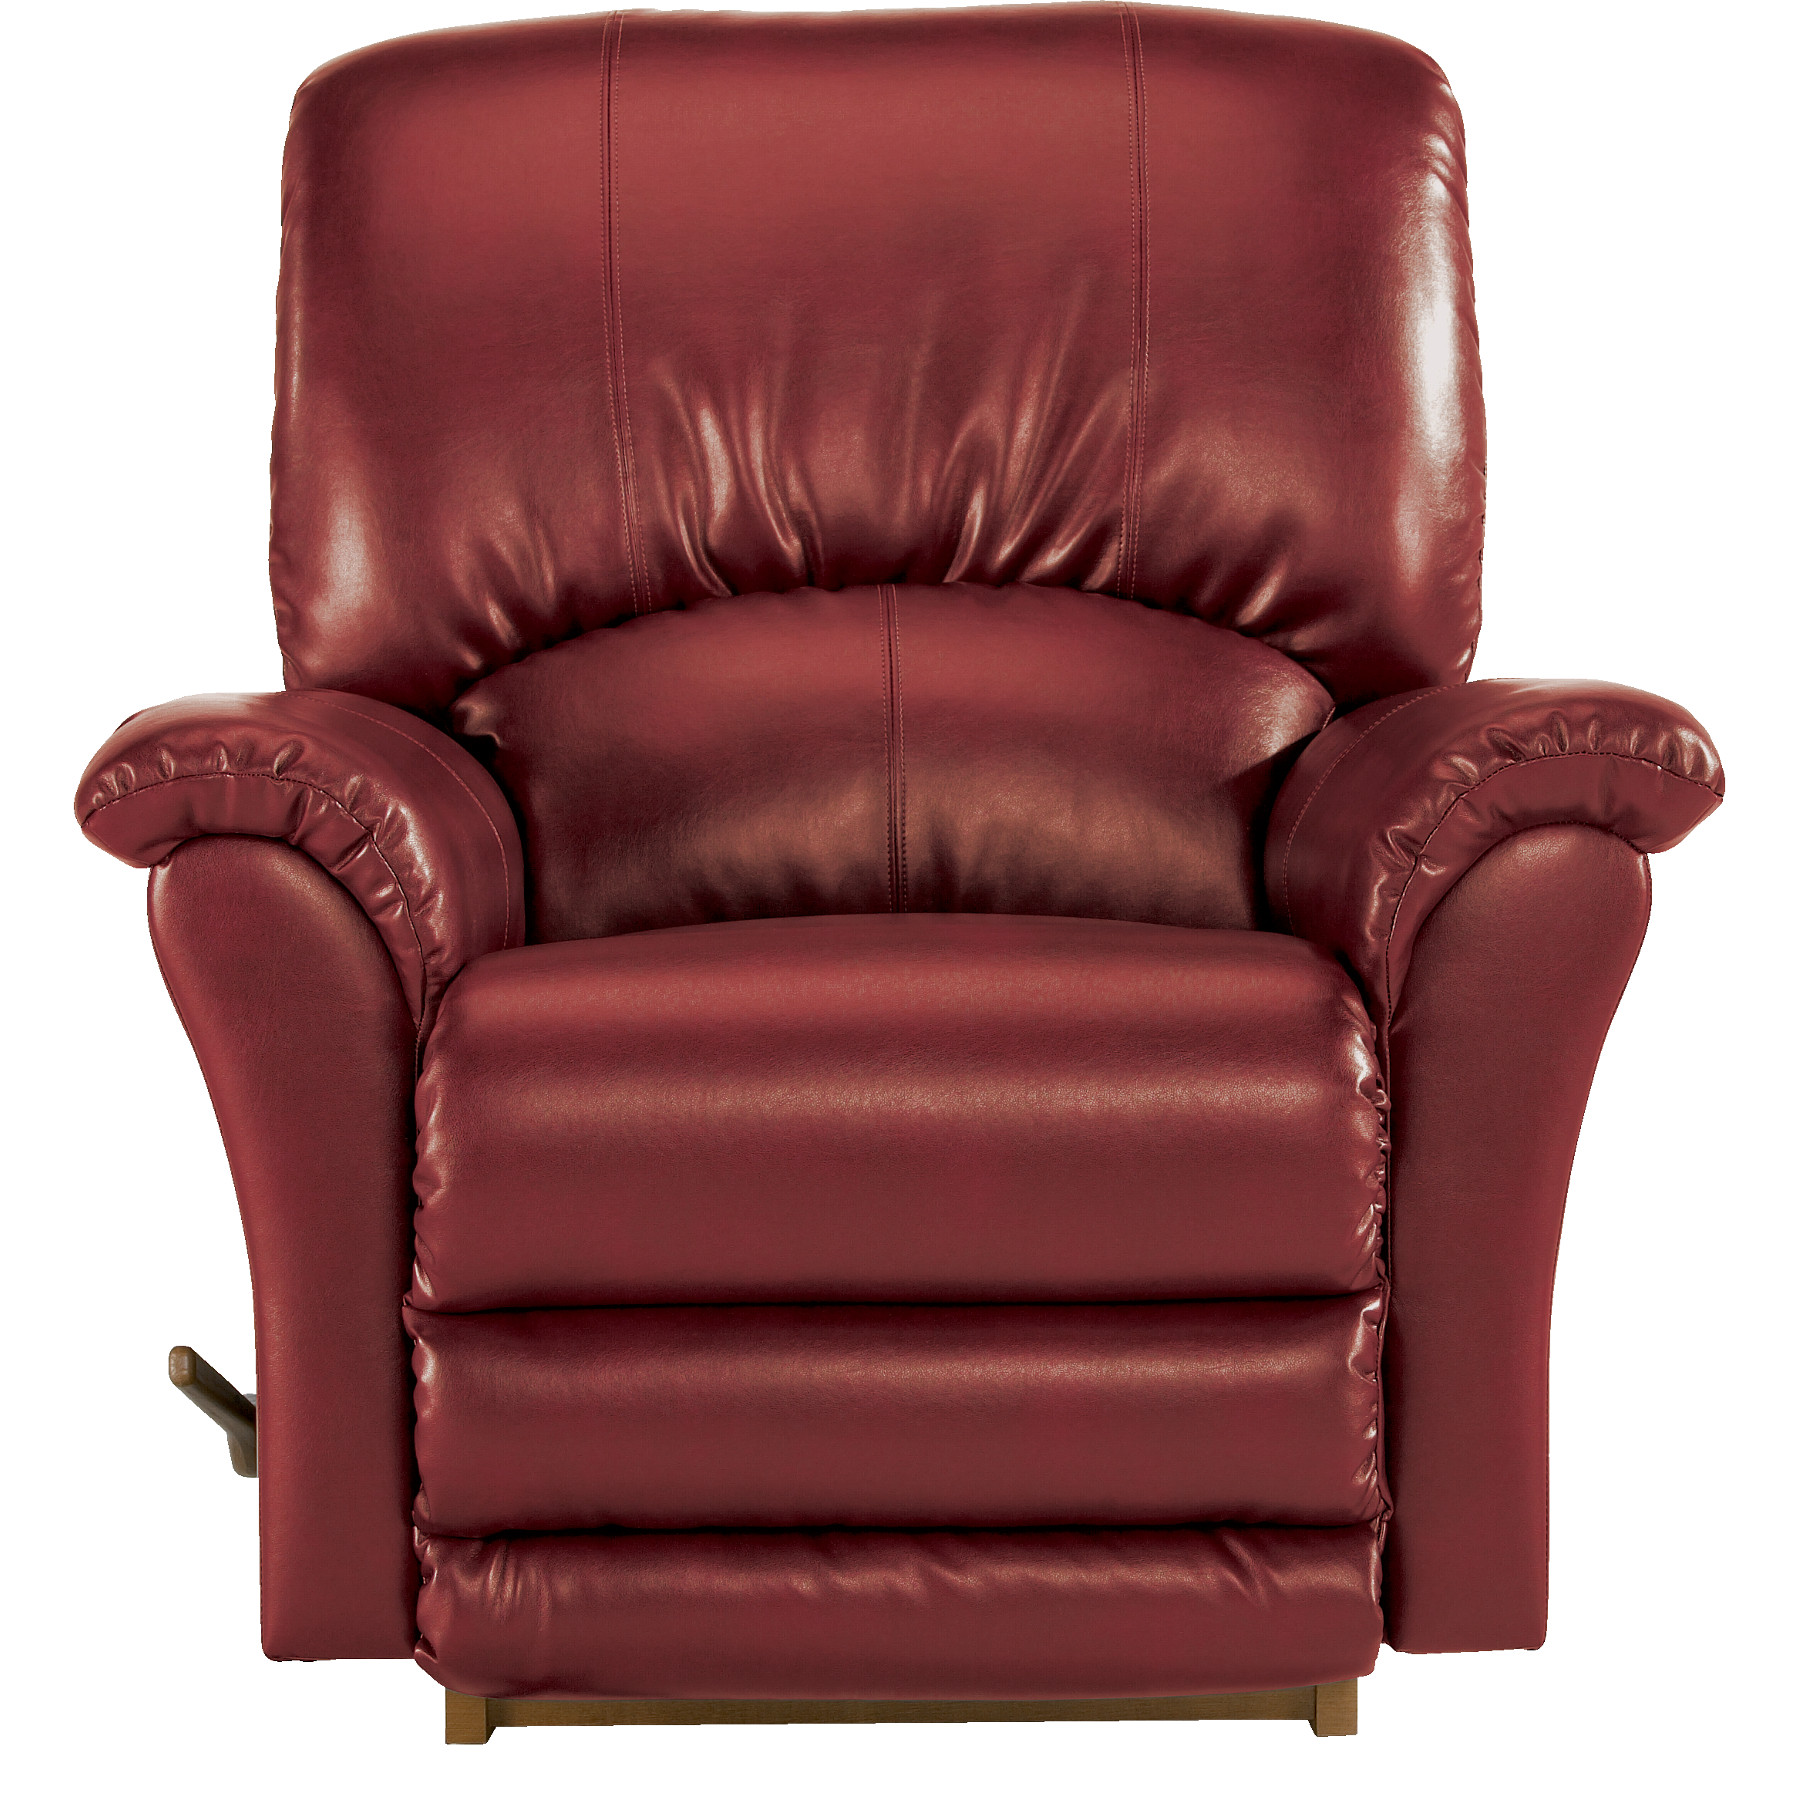 La-Z-Boy CANTINA ROCKER RECLINER RED